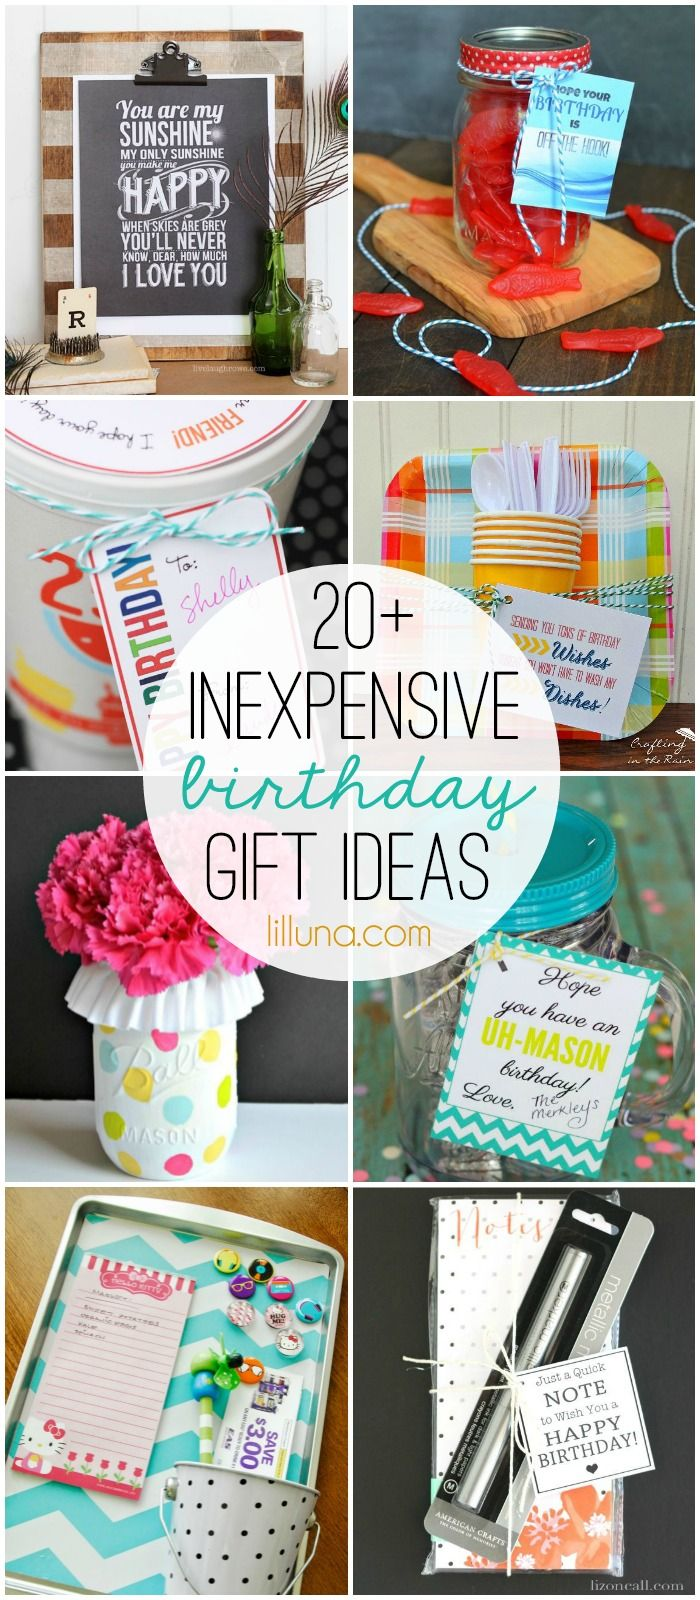 inexpensive birthday gift ideas | diy projects and recipes